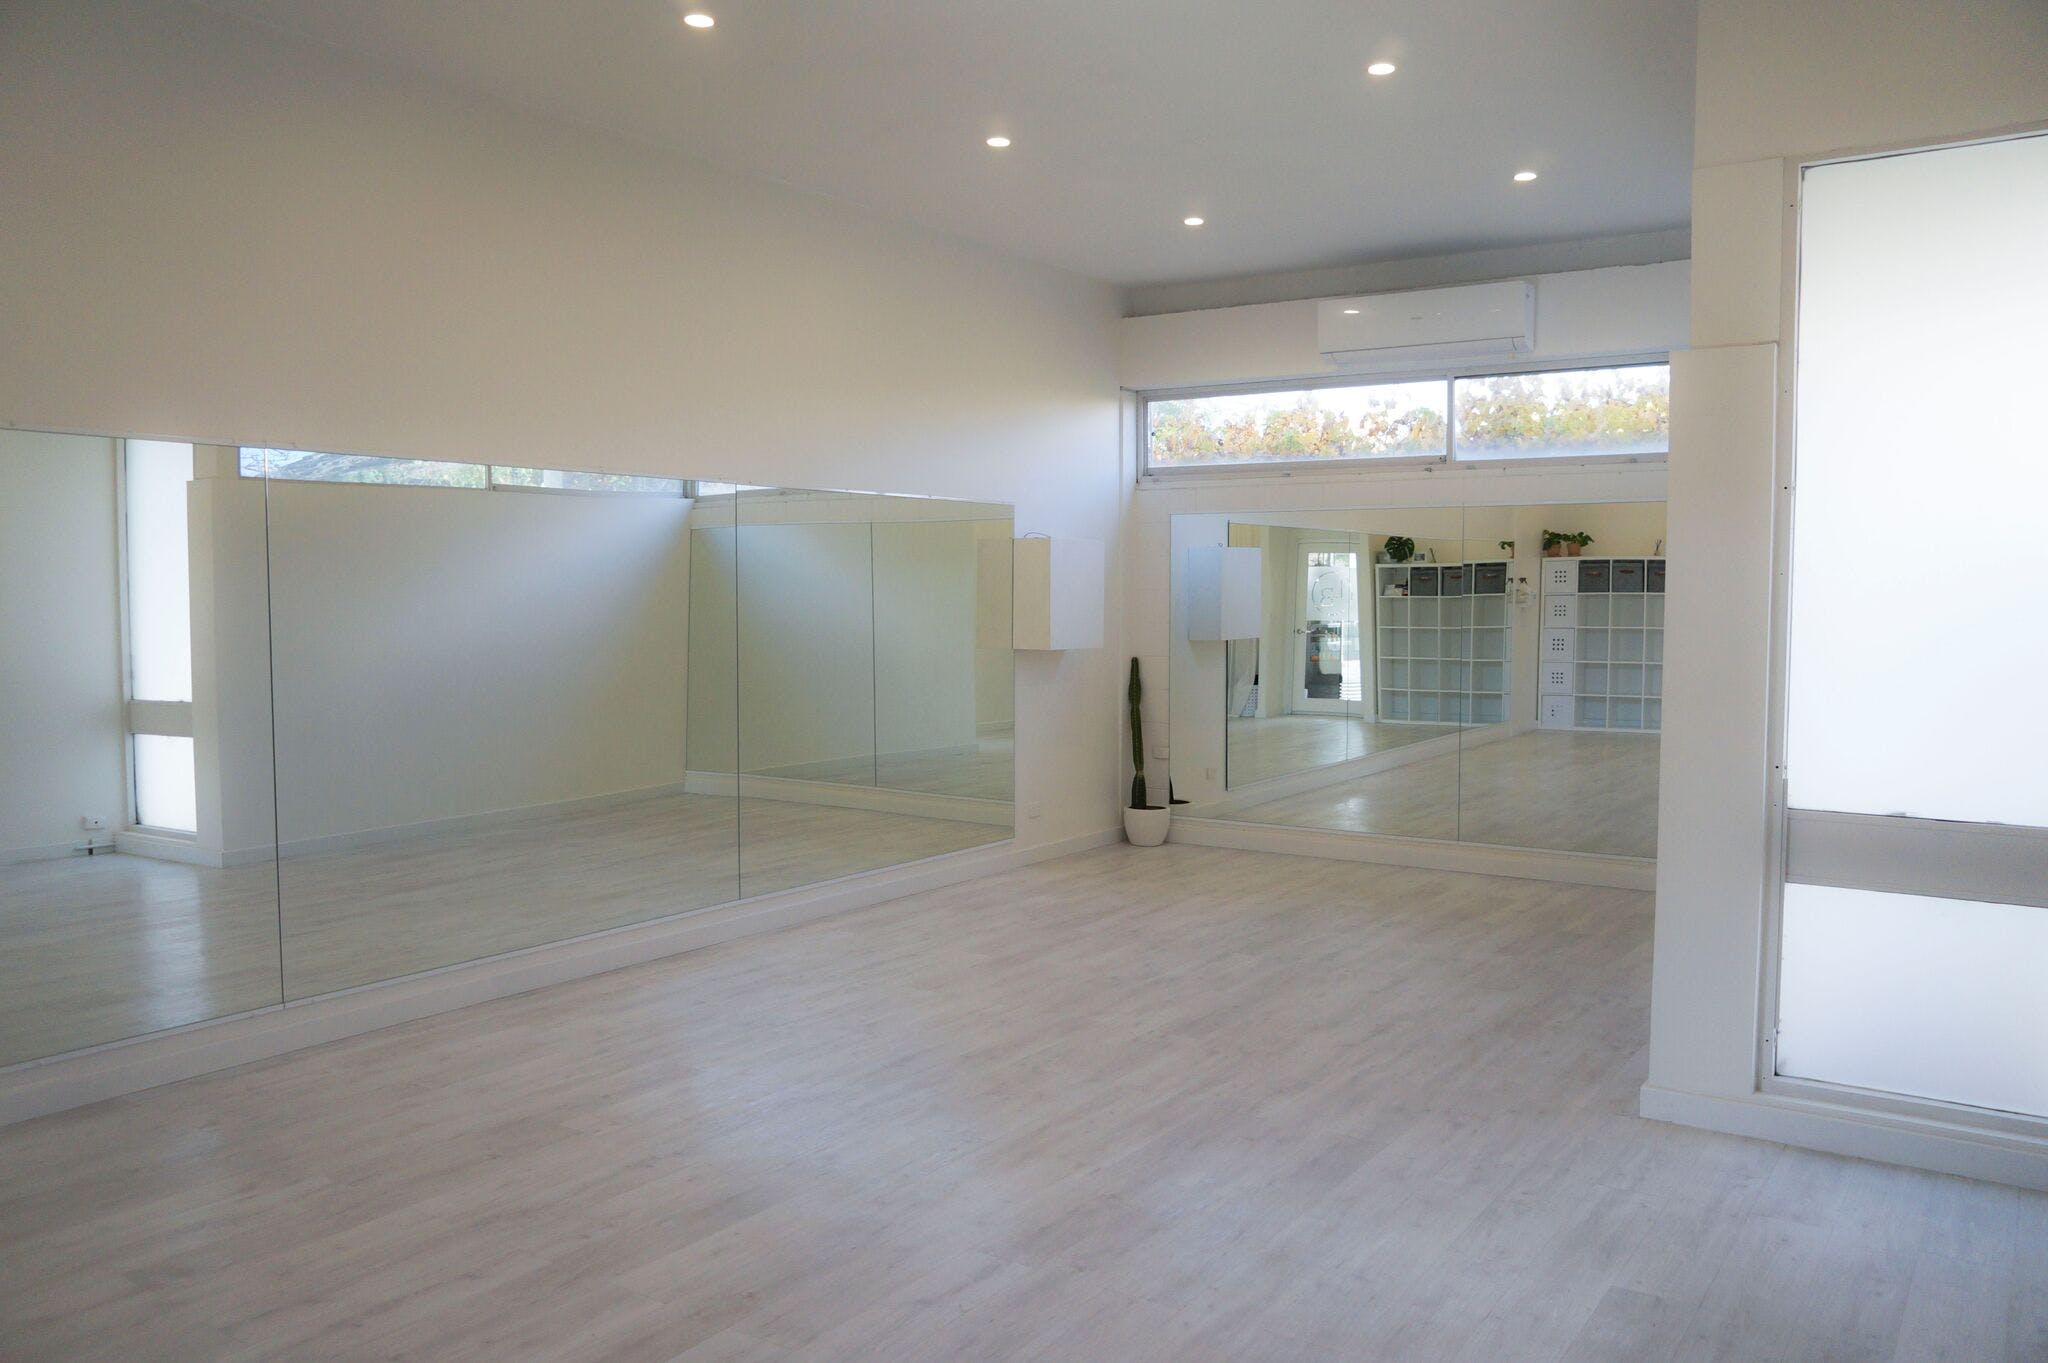 Make this boutique studio space your own, image 1